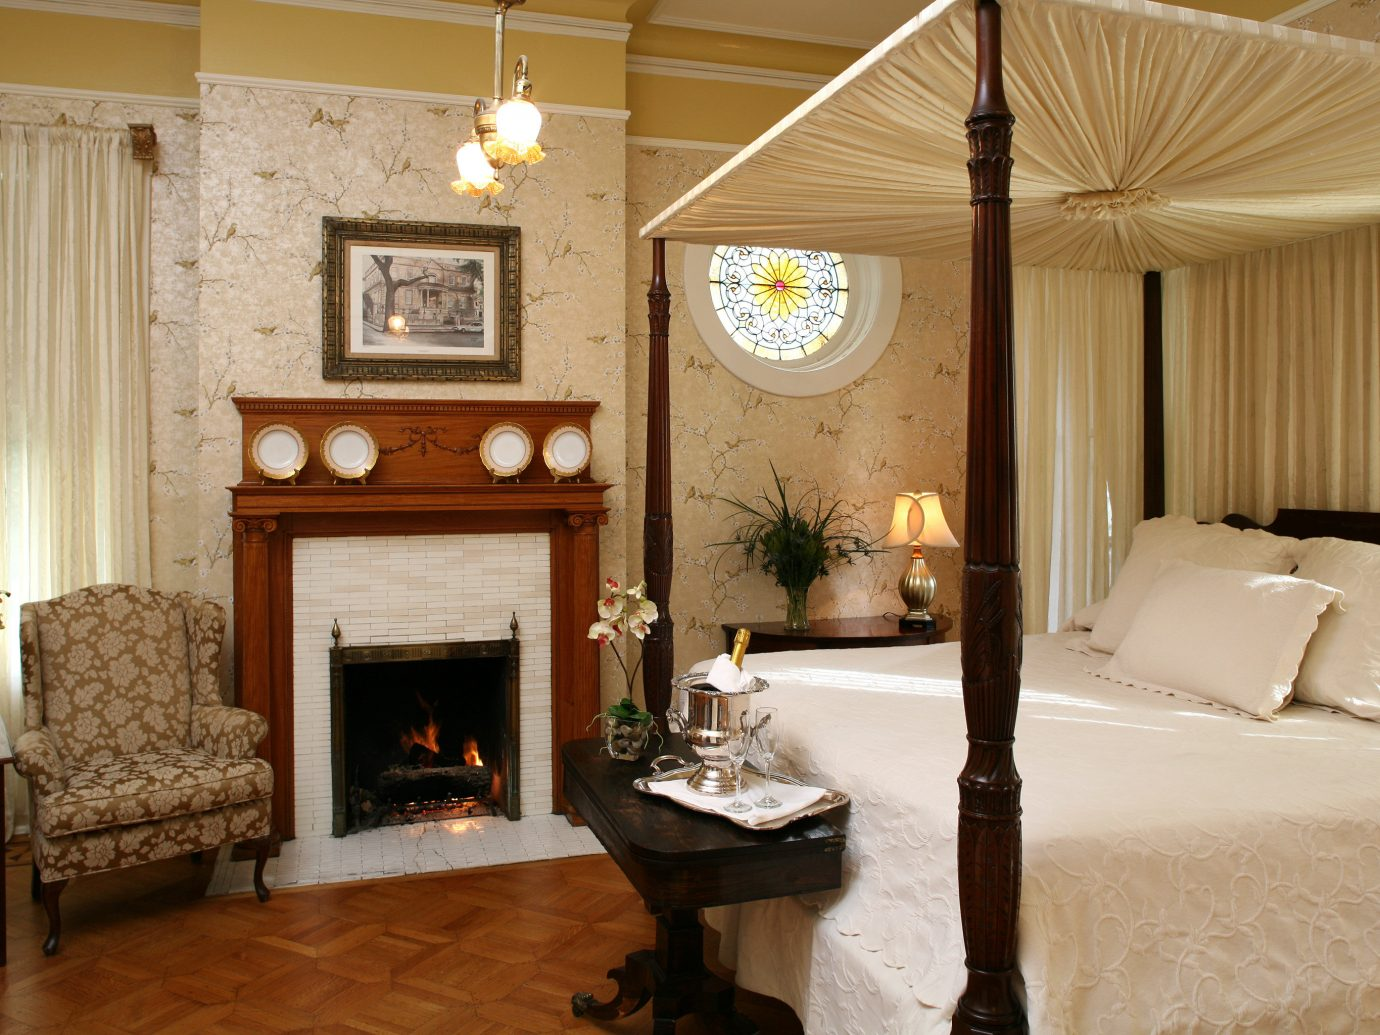 Bedroom Historic Luxury Romance Suite Trip Ideas indoor floor room Living property Fireplace living room estate home ceiling cottage interior design farmhouse Villa wood mansion furniture decorated